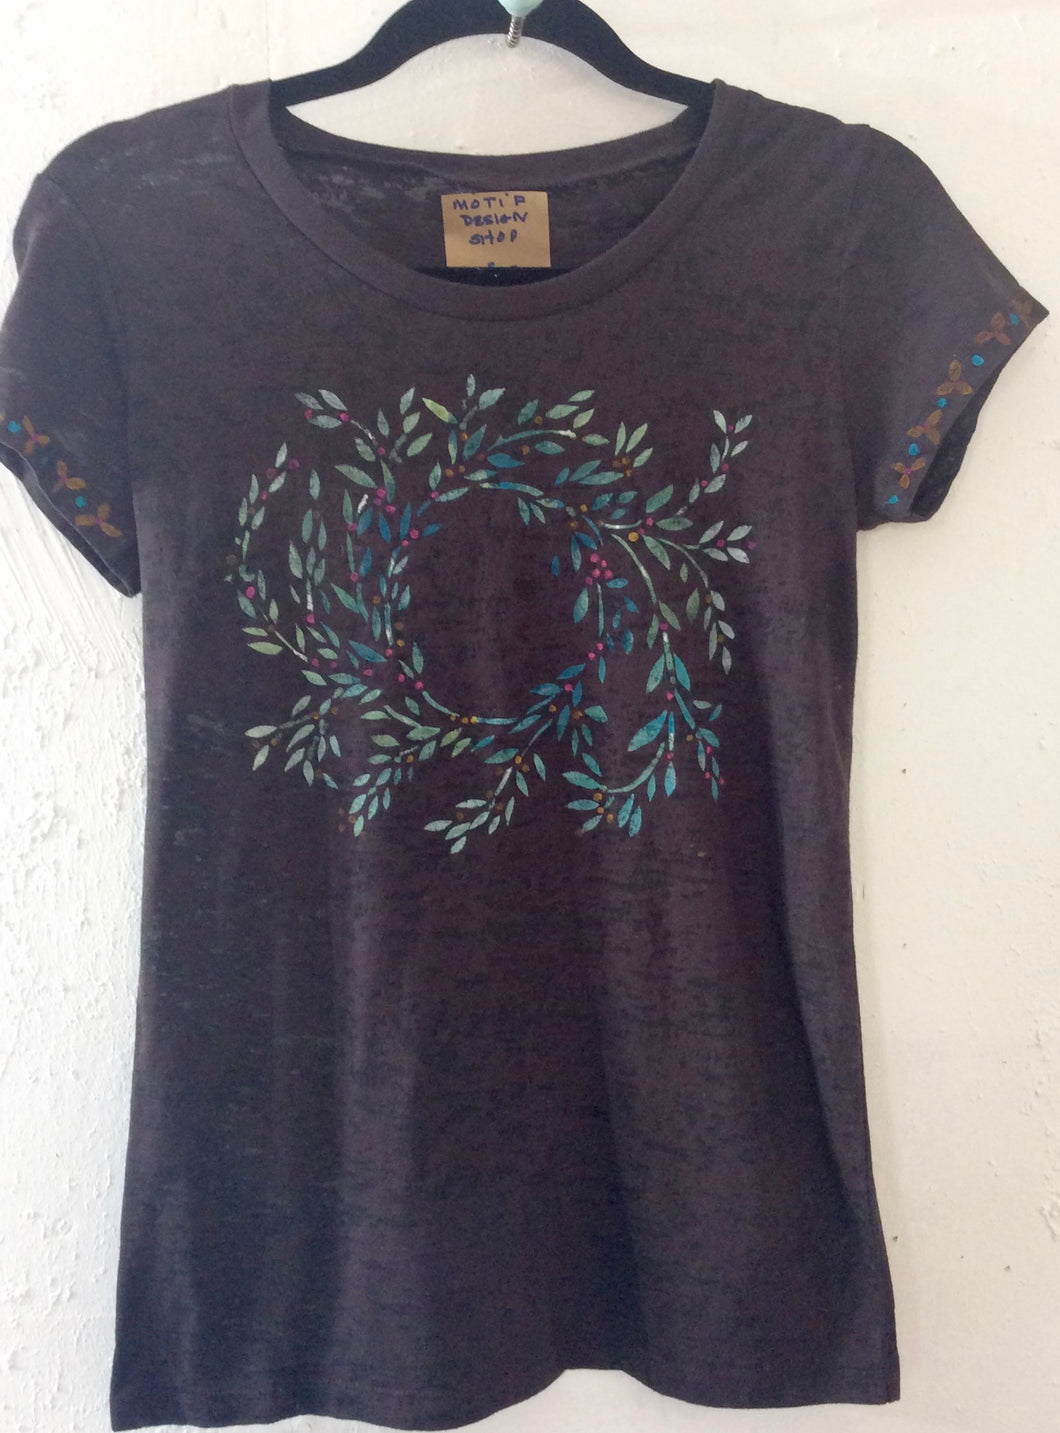 Wandering Circular VInes handpainted on a burn out brown crew neck tee